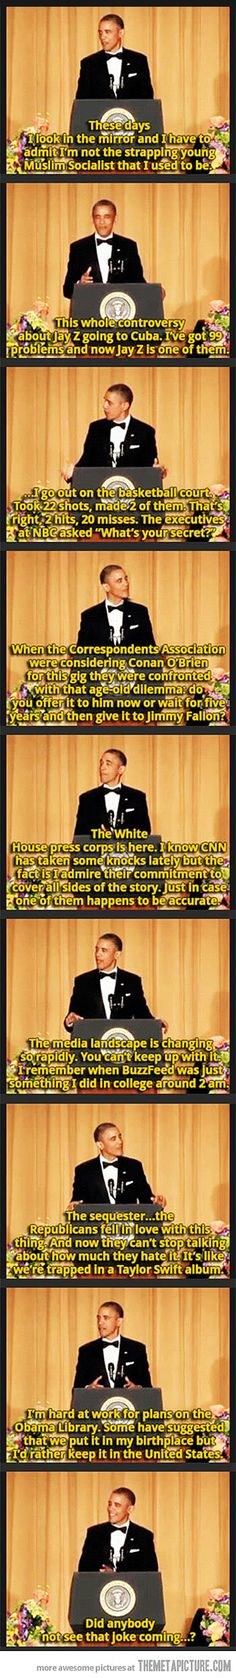 Obama's one-liners at White House Correspondents Dinner :)